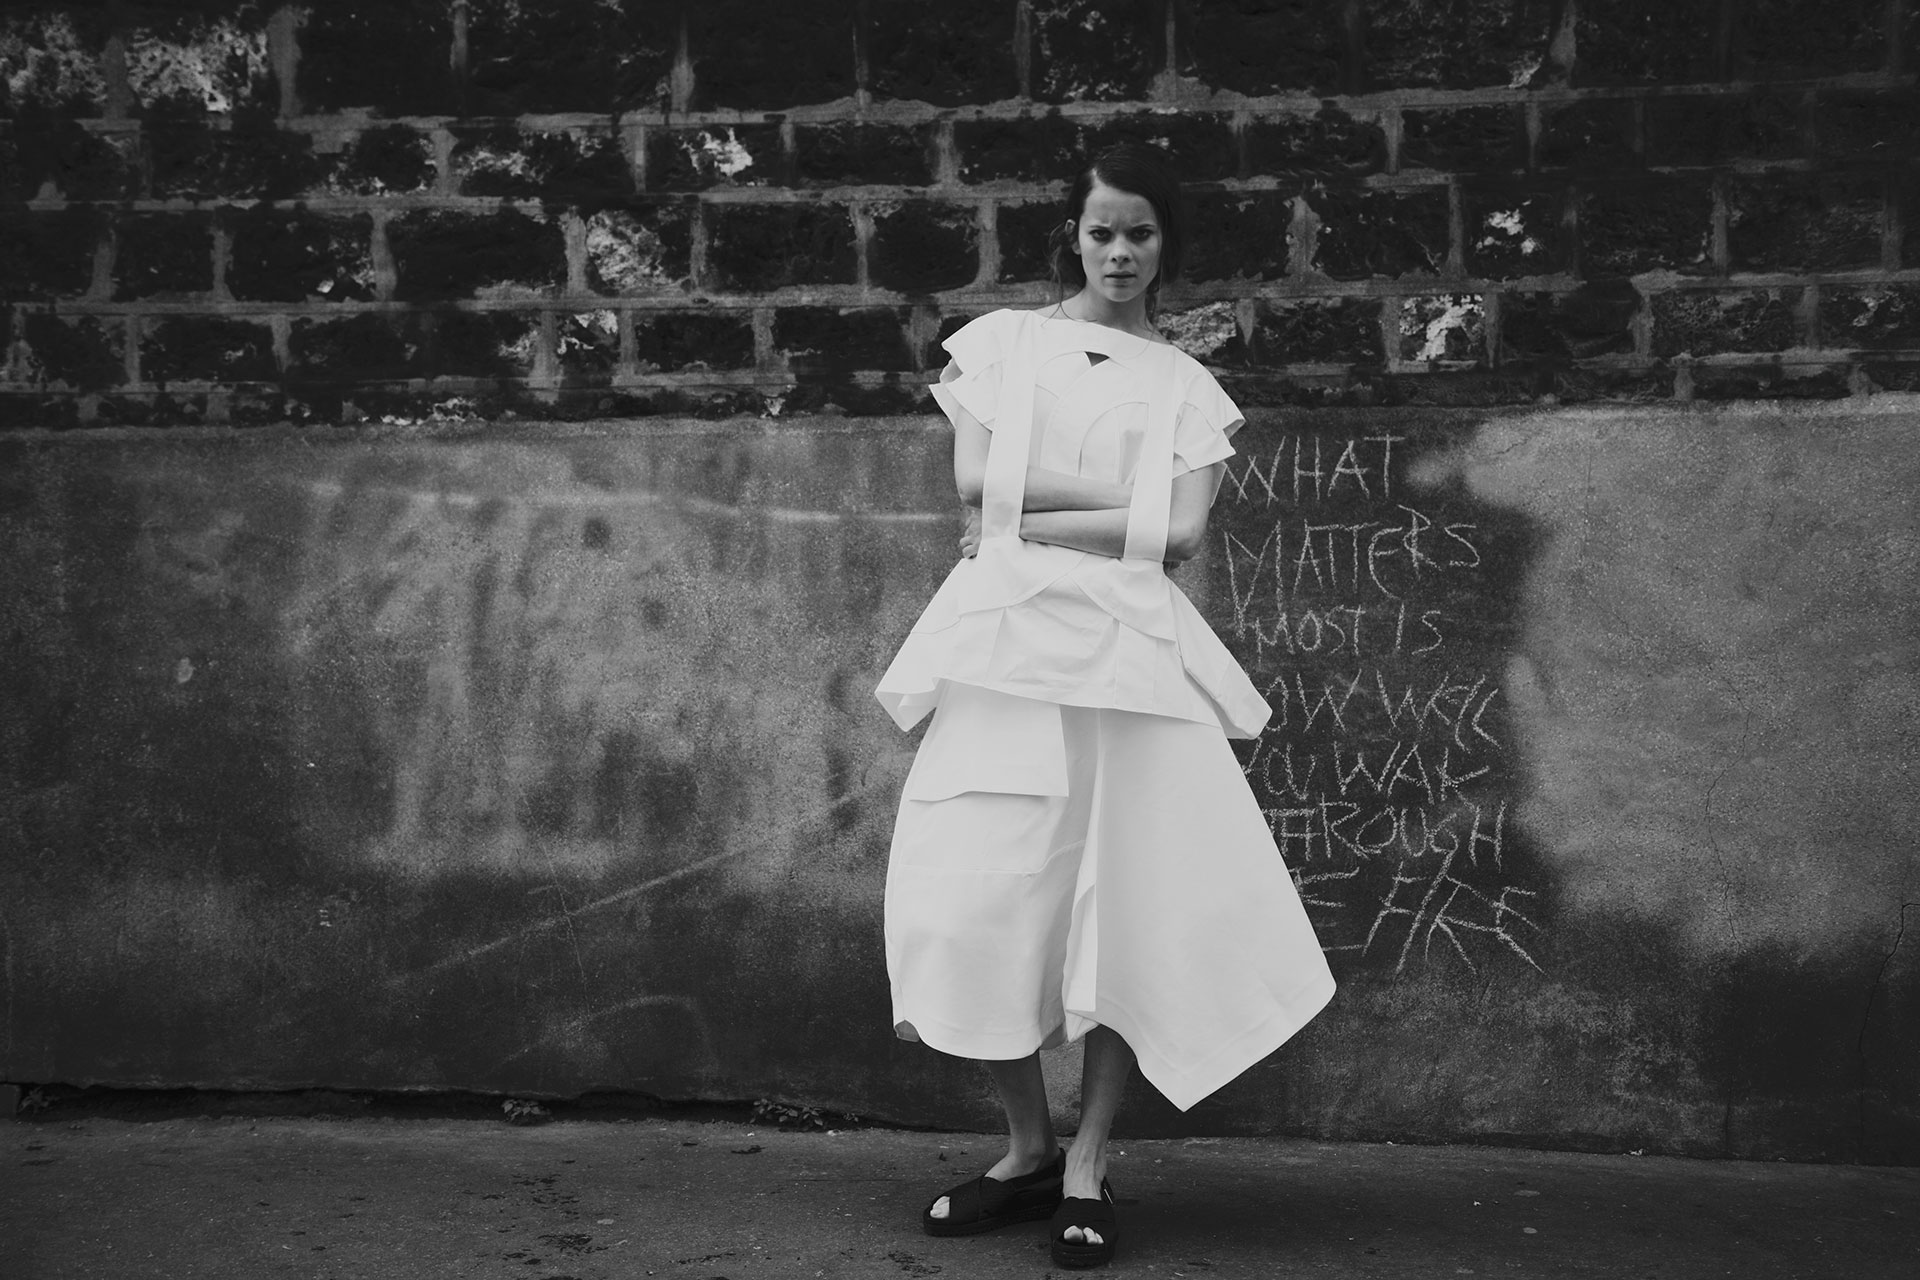 COMME DES GARÇONS - J.W. ANDERSON - SURFACE TO AIR - SONIA CHEDLI - STYLIST - FASHION - BLACK AND WHITE